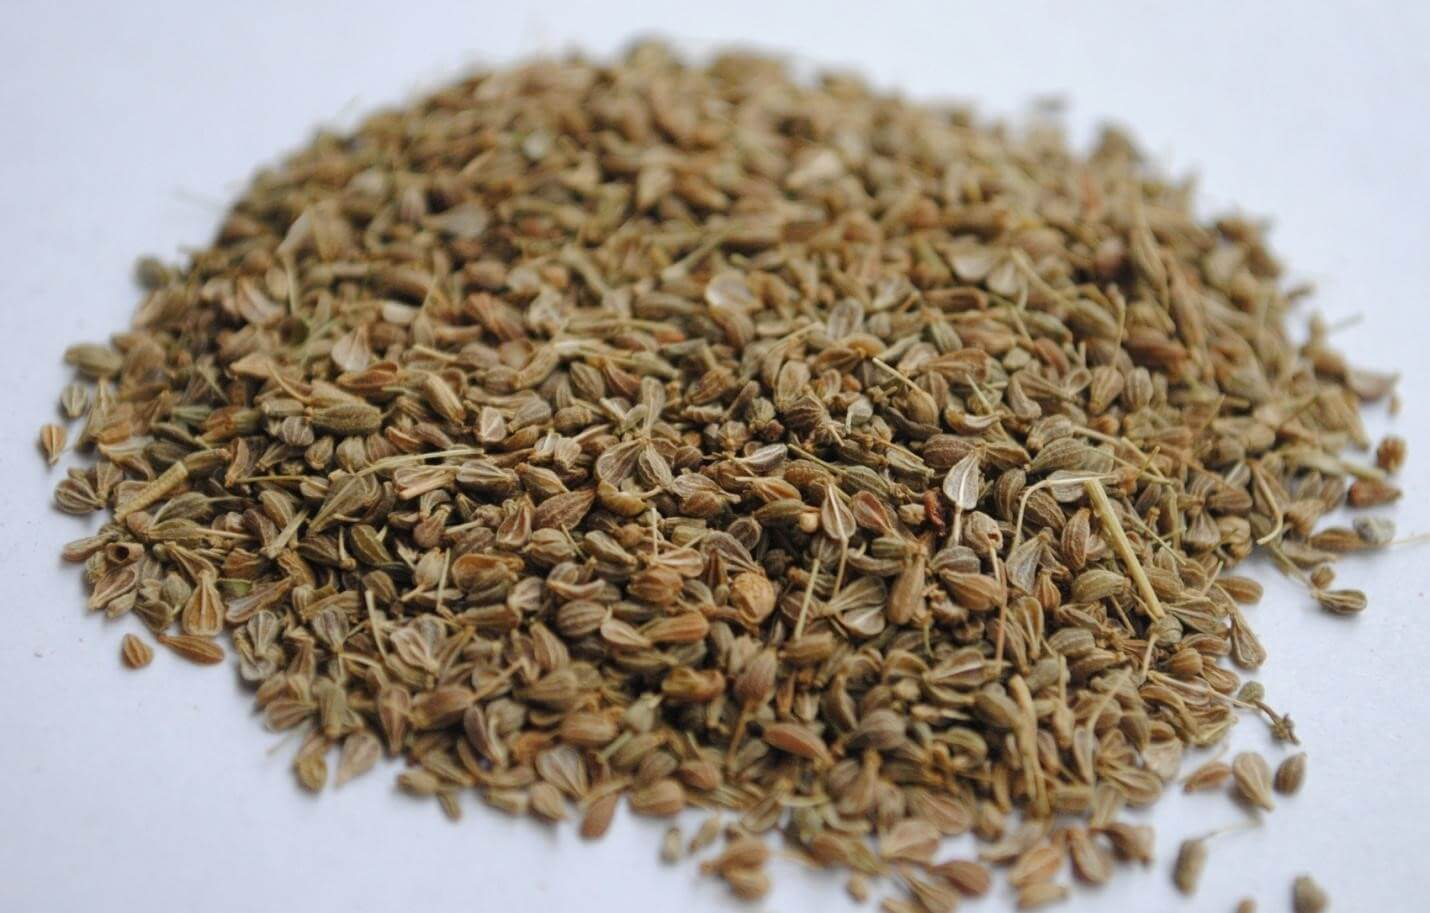 Flax Seeds, medicinal plants and their uses